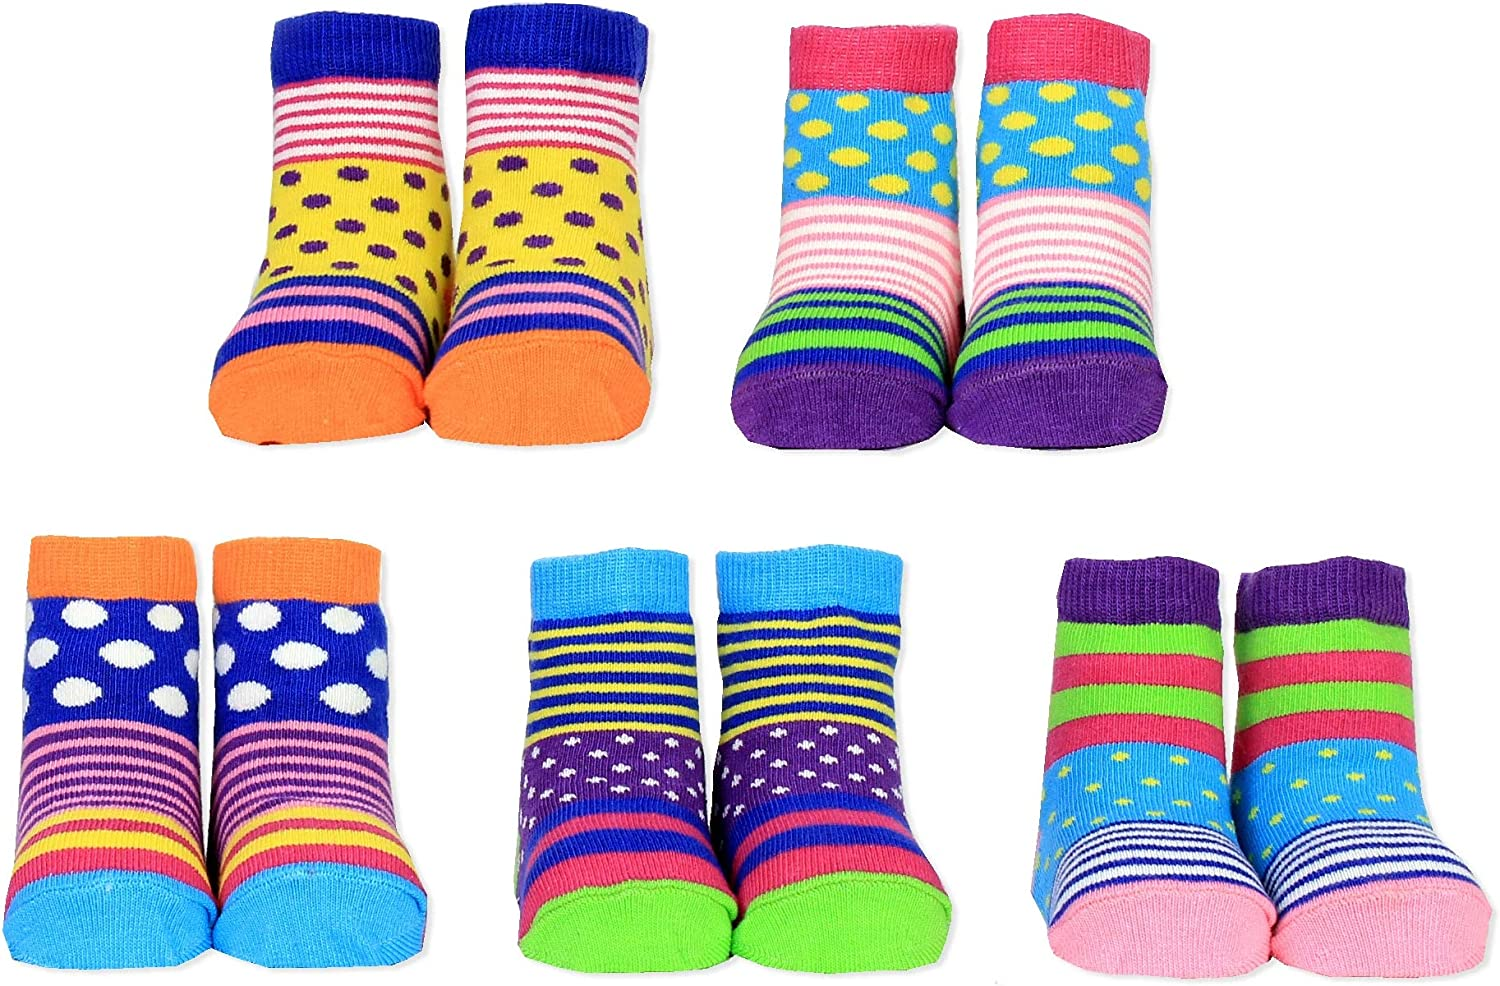 Cucamelon Polka Tots Dots Stripey 5 Pairs of Socks 1-2 Years Toddler Gift Boxed